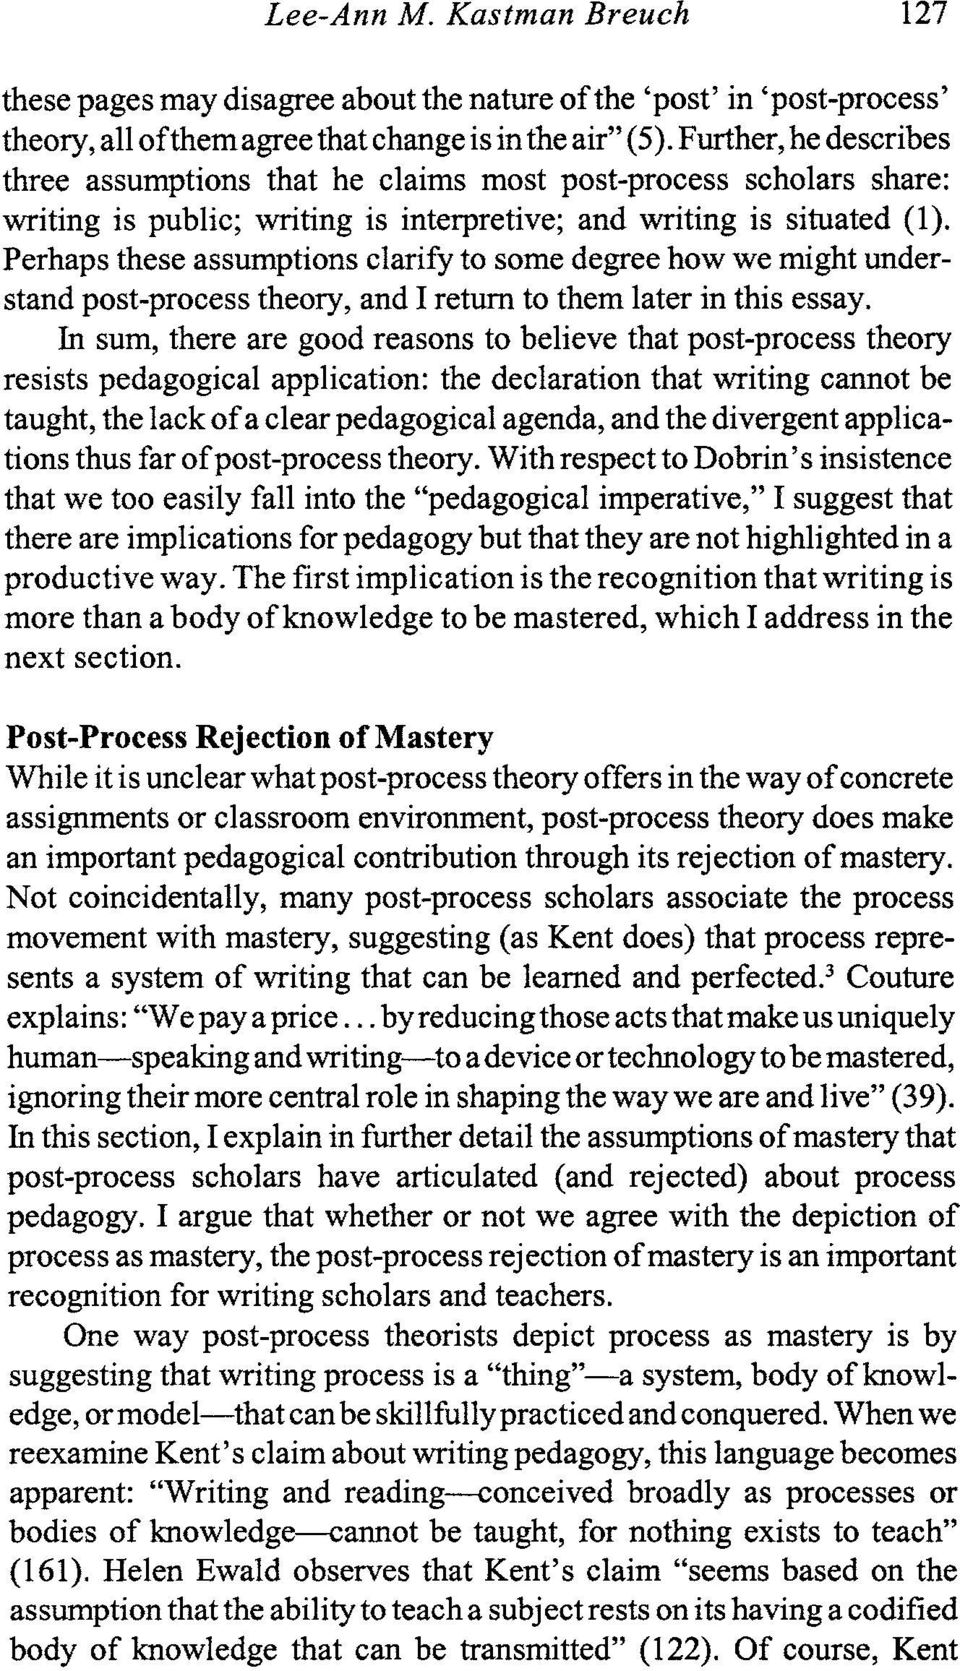 Perhaps these assumptions clarify to some degree how we might understand post-process theory, and I return to them later in this essay.